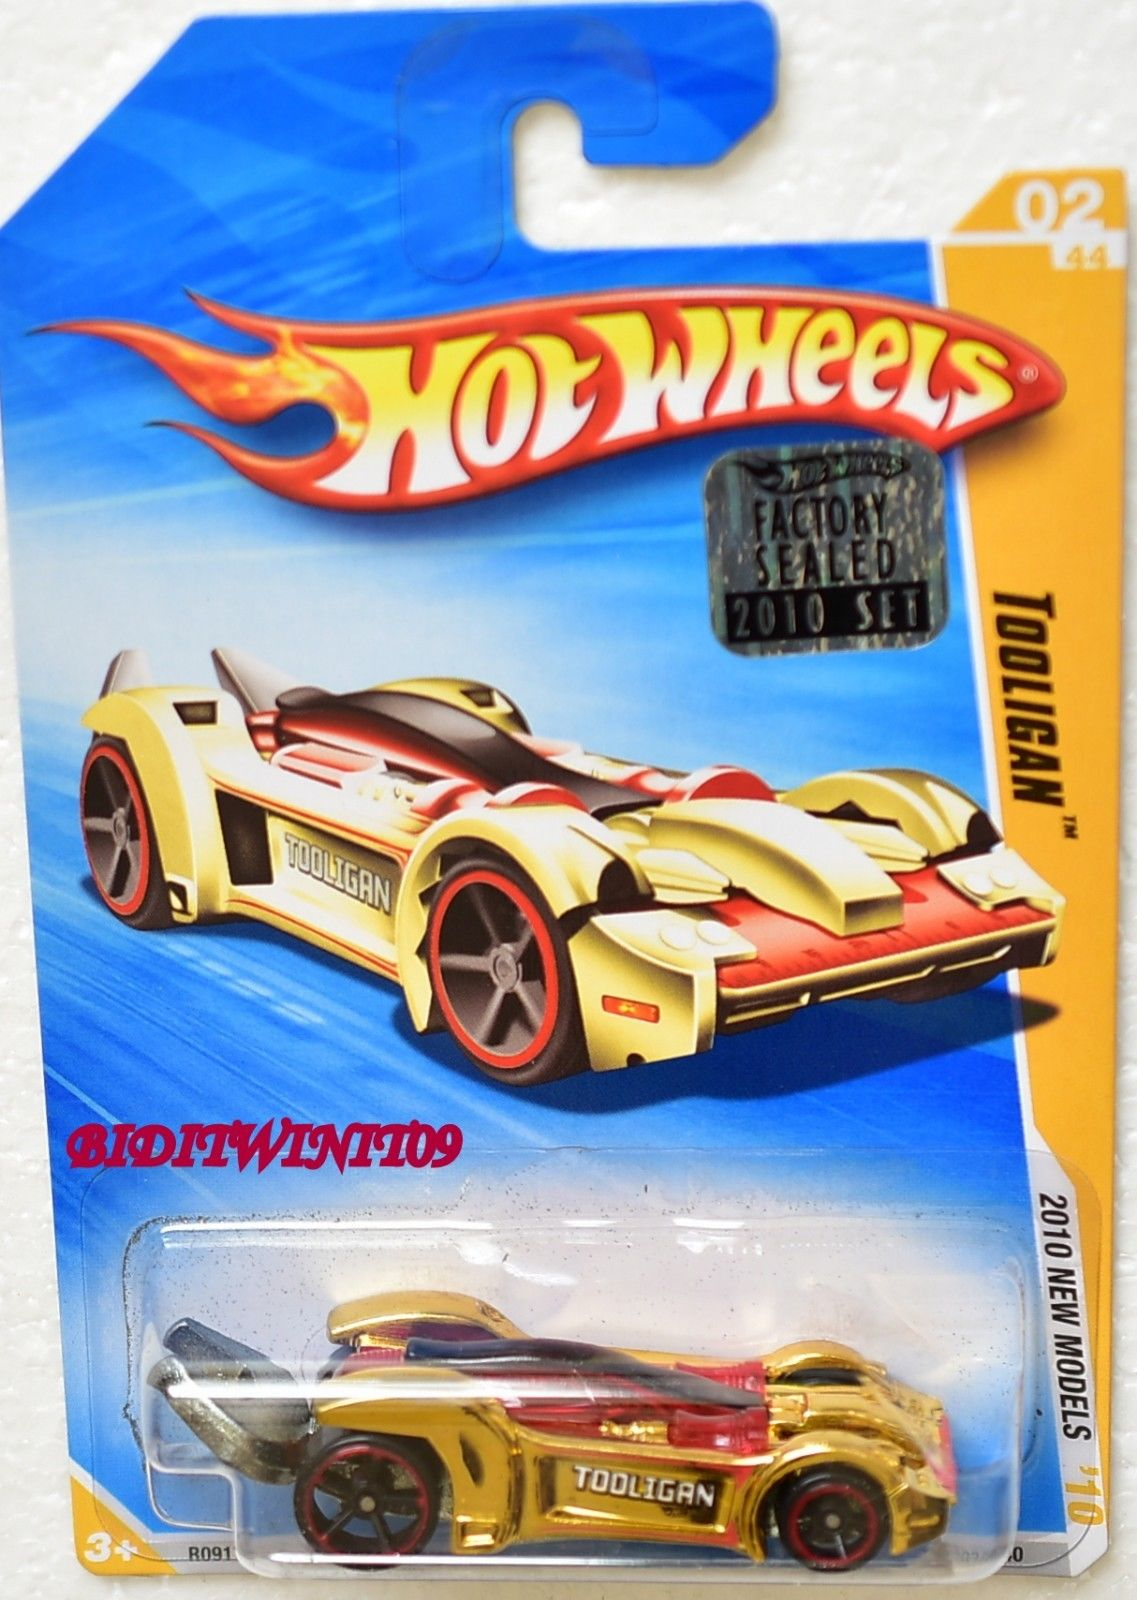 HOT WHEELS 2010 NEW MODELS TOOLIGAN #02/44 GOLD FACTORY SEALED